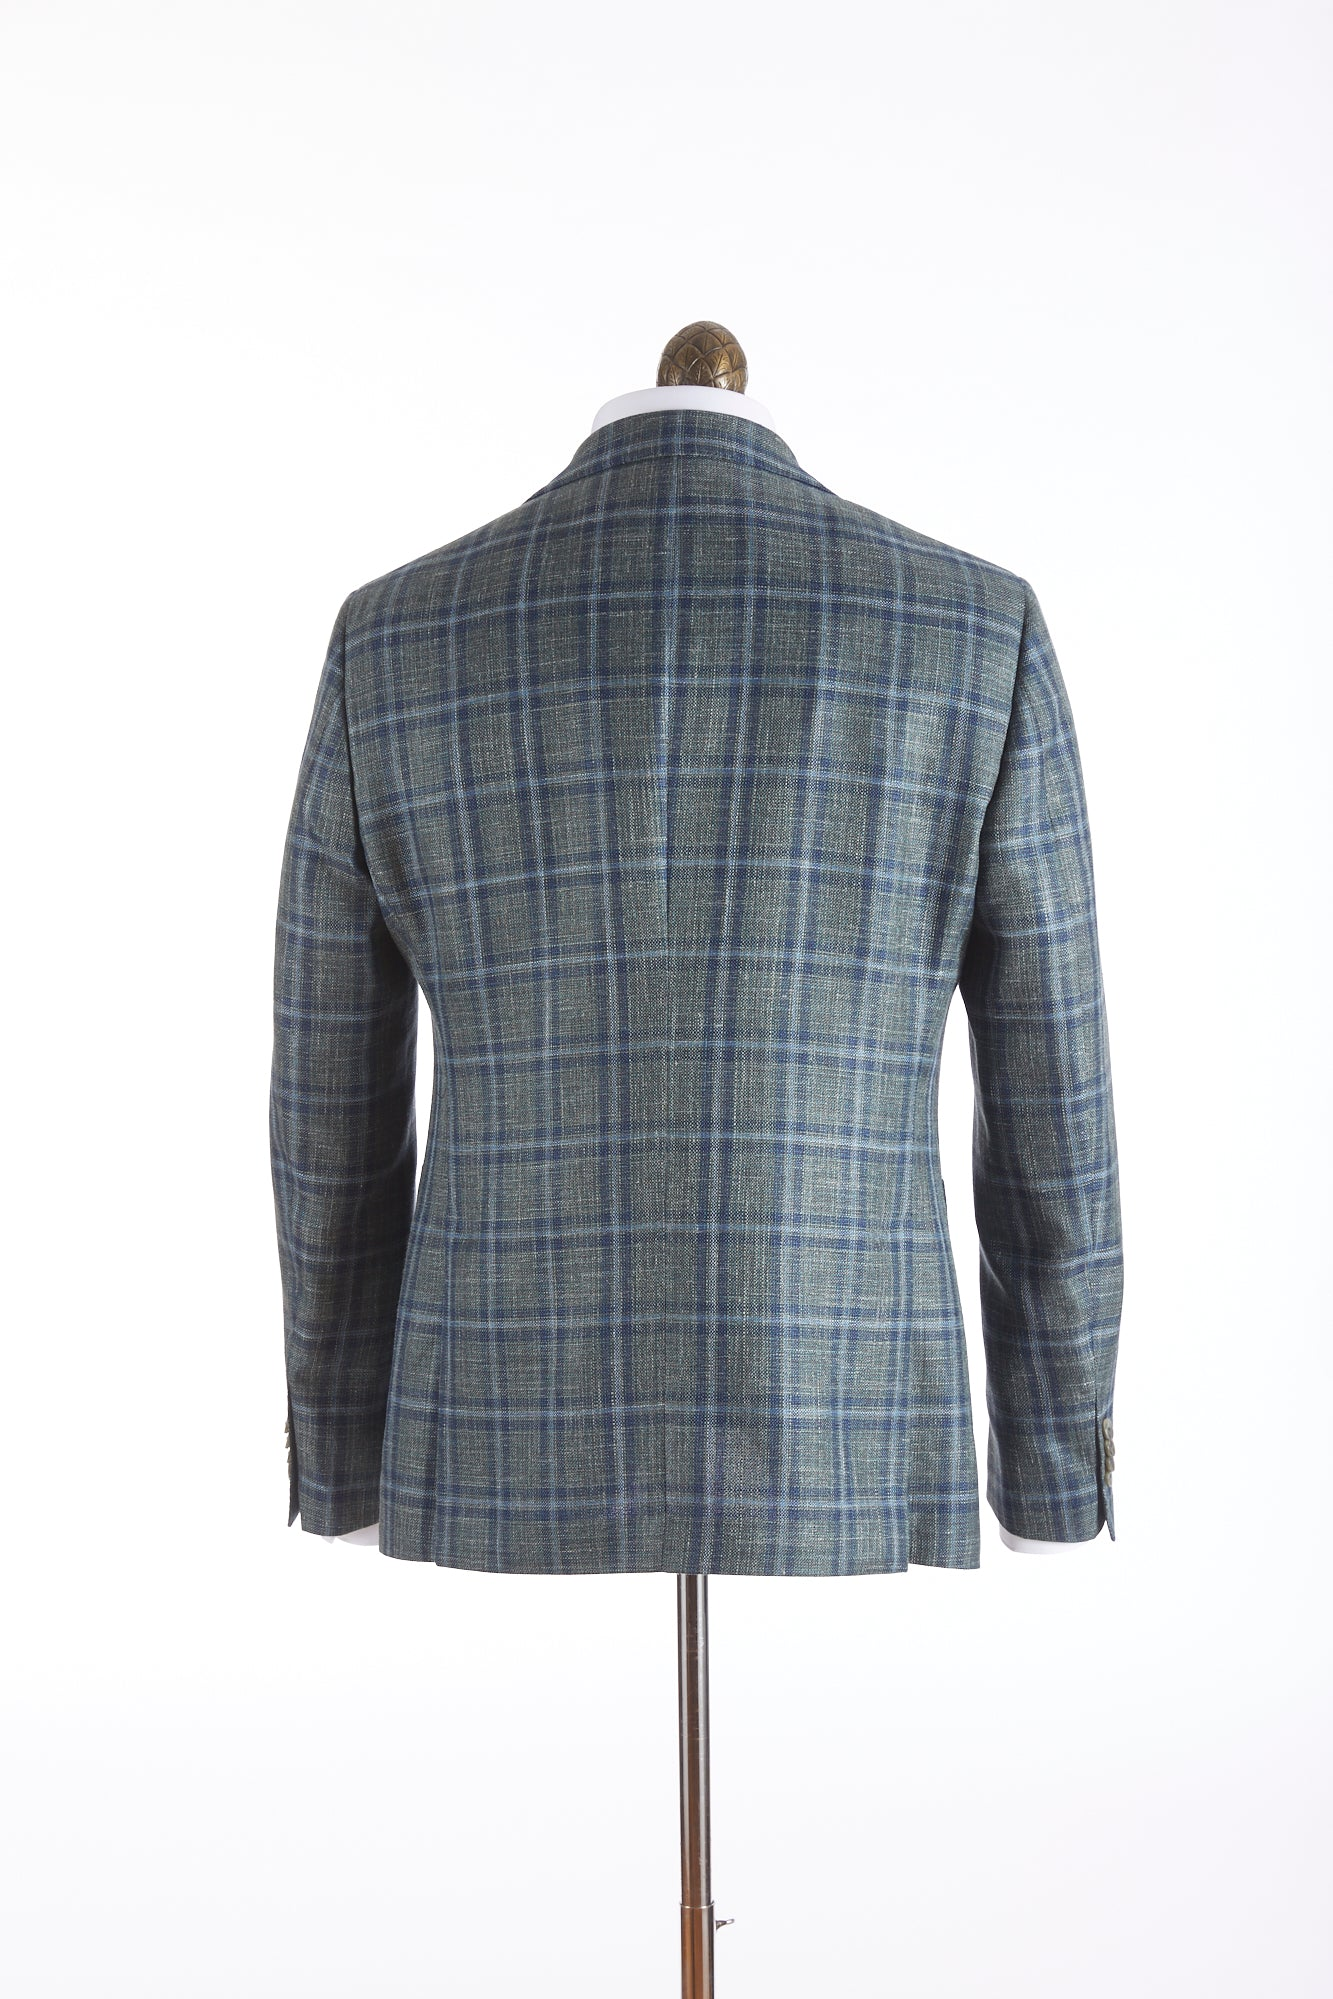 Luigi Bianchi Mantova Green Windowpane Loro Piana Sport Jacket Back